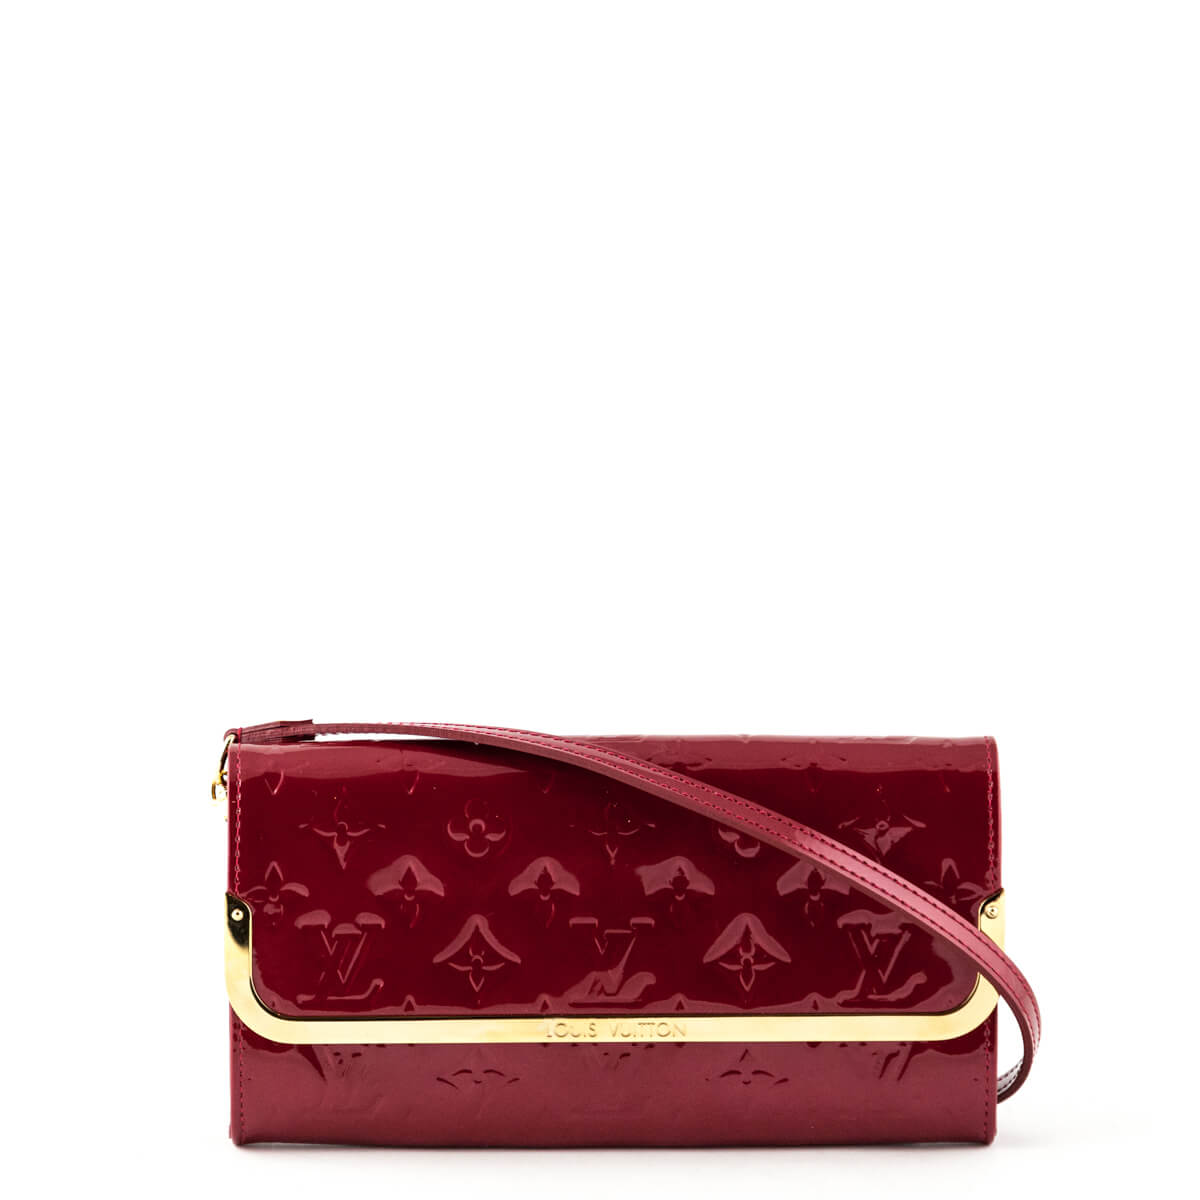 a9ed8cbbb1f4 Louis Vuitton Pomme D Amour Monogram Vernis Rossmore MM - LOVE that BAG -  Preowned ...